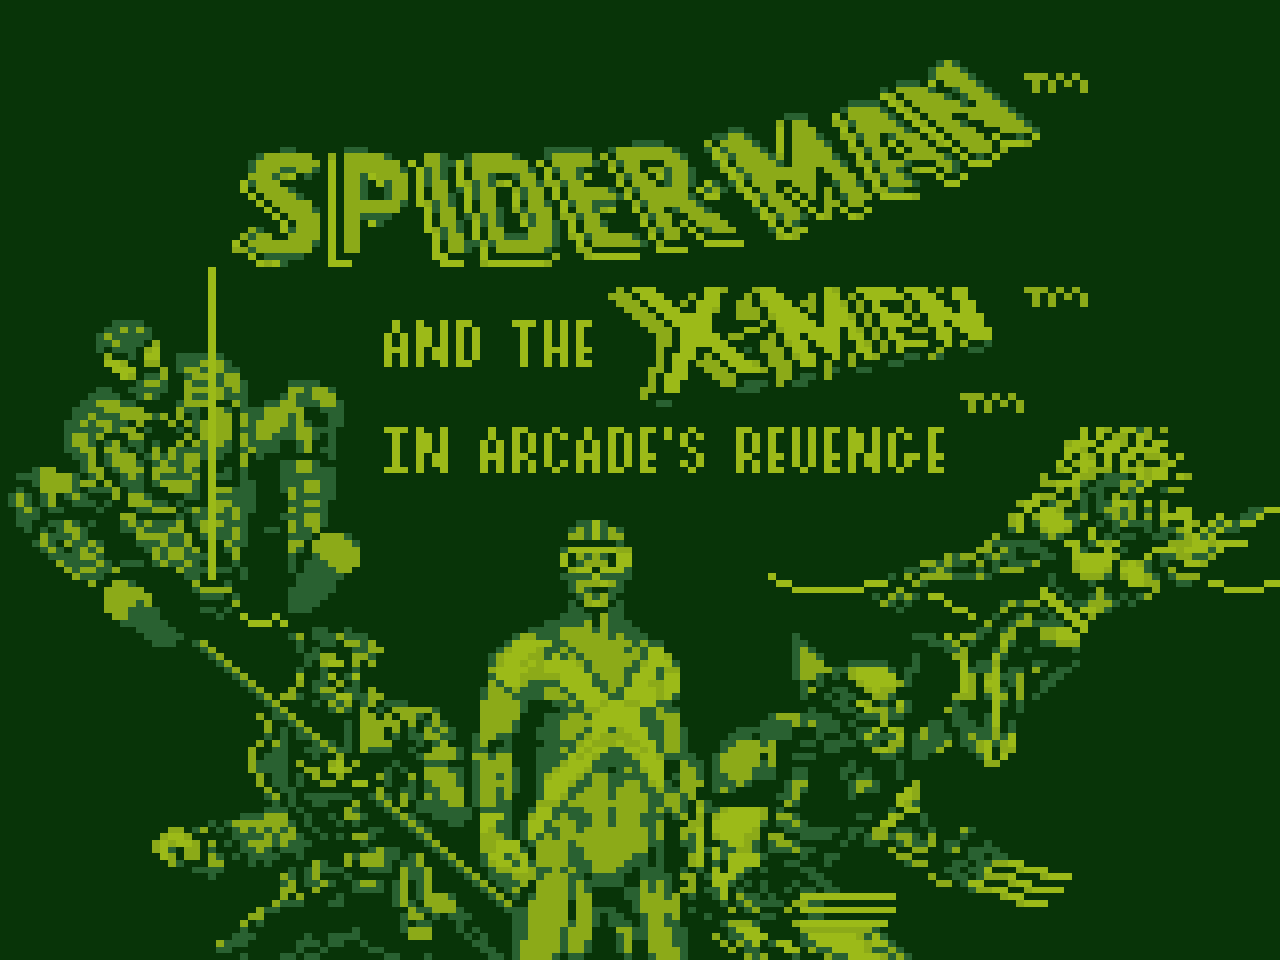 https://s3.eu-west-3.amazonaws.com/games.anthony-dessalles.com/Spider-Man and the X-Men in Arcade's Revenge GB 2020 - Screenshots/Spider-Man and the X-Men in Arcade's Revenge-201113-173638.png